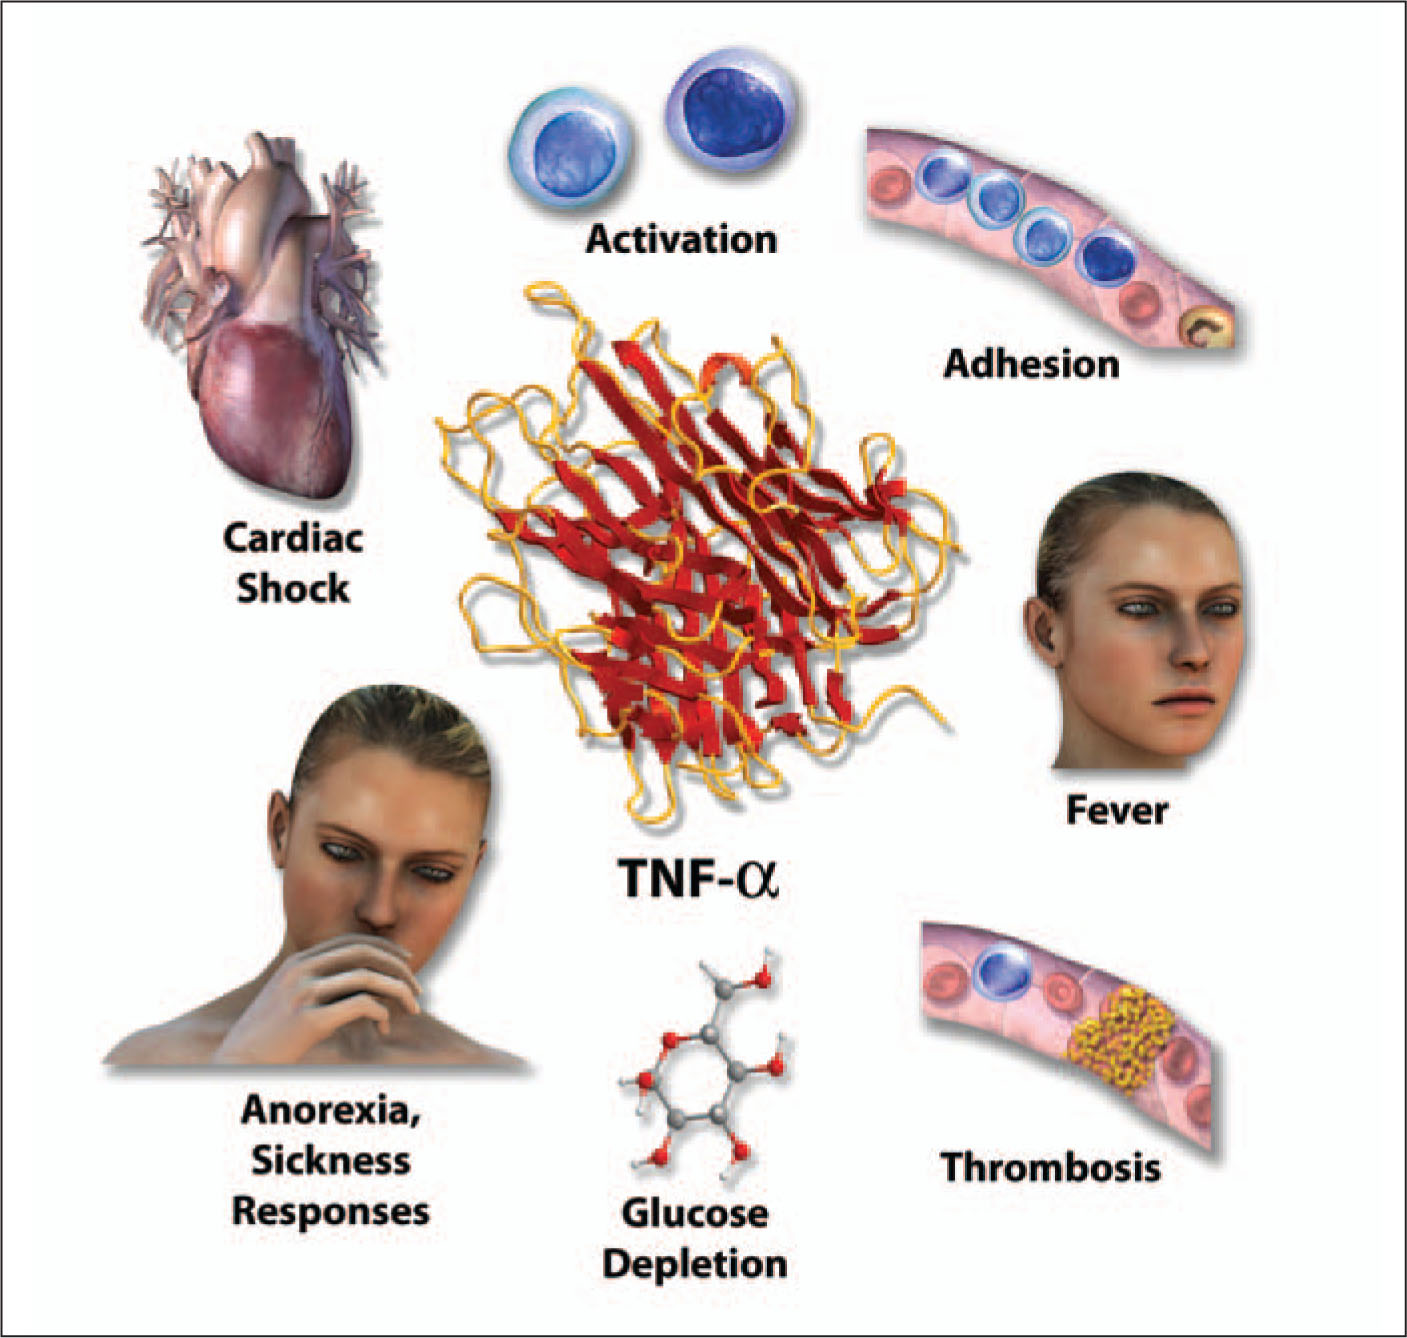 TNF-alpha Is an Early Mediator of Immune Responses. It Is Secreted Primarily by Cells of Innate Immunity, Namely Macrophages, Mast Cells, and Natural Killer Cells. TNF-alpha Recruits Immune System Cells to Sites of Infection by Activating the Cells and Promoting the Expression of Specialized Proteins that Make Immune System Cells Adhere to Endothelium. TNF-alpha Is a Pyrogen, and Therefore Causes Fever. It also Mediates Anorexia and a Variety of Other Sickness Symptoms. when It Is Present in the Circulation at High Concentrations, TNF-alpha Can Precipitate Extremely Low Glucose Levels. It Can Cause the Decreases in Cardiac Contractility and Blood Pressure that Characterize Septic Shock. TNF-alpha Induces the Production of IL-1. A Note from the Editors: All Illustrations in This Article Have Been Created by George I. Viamontes, MD, PhD, for Specific Use in This Issue of Psychiatric Annals.